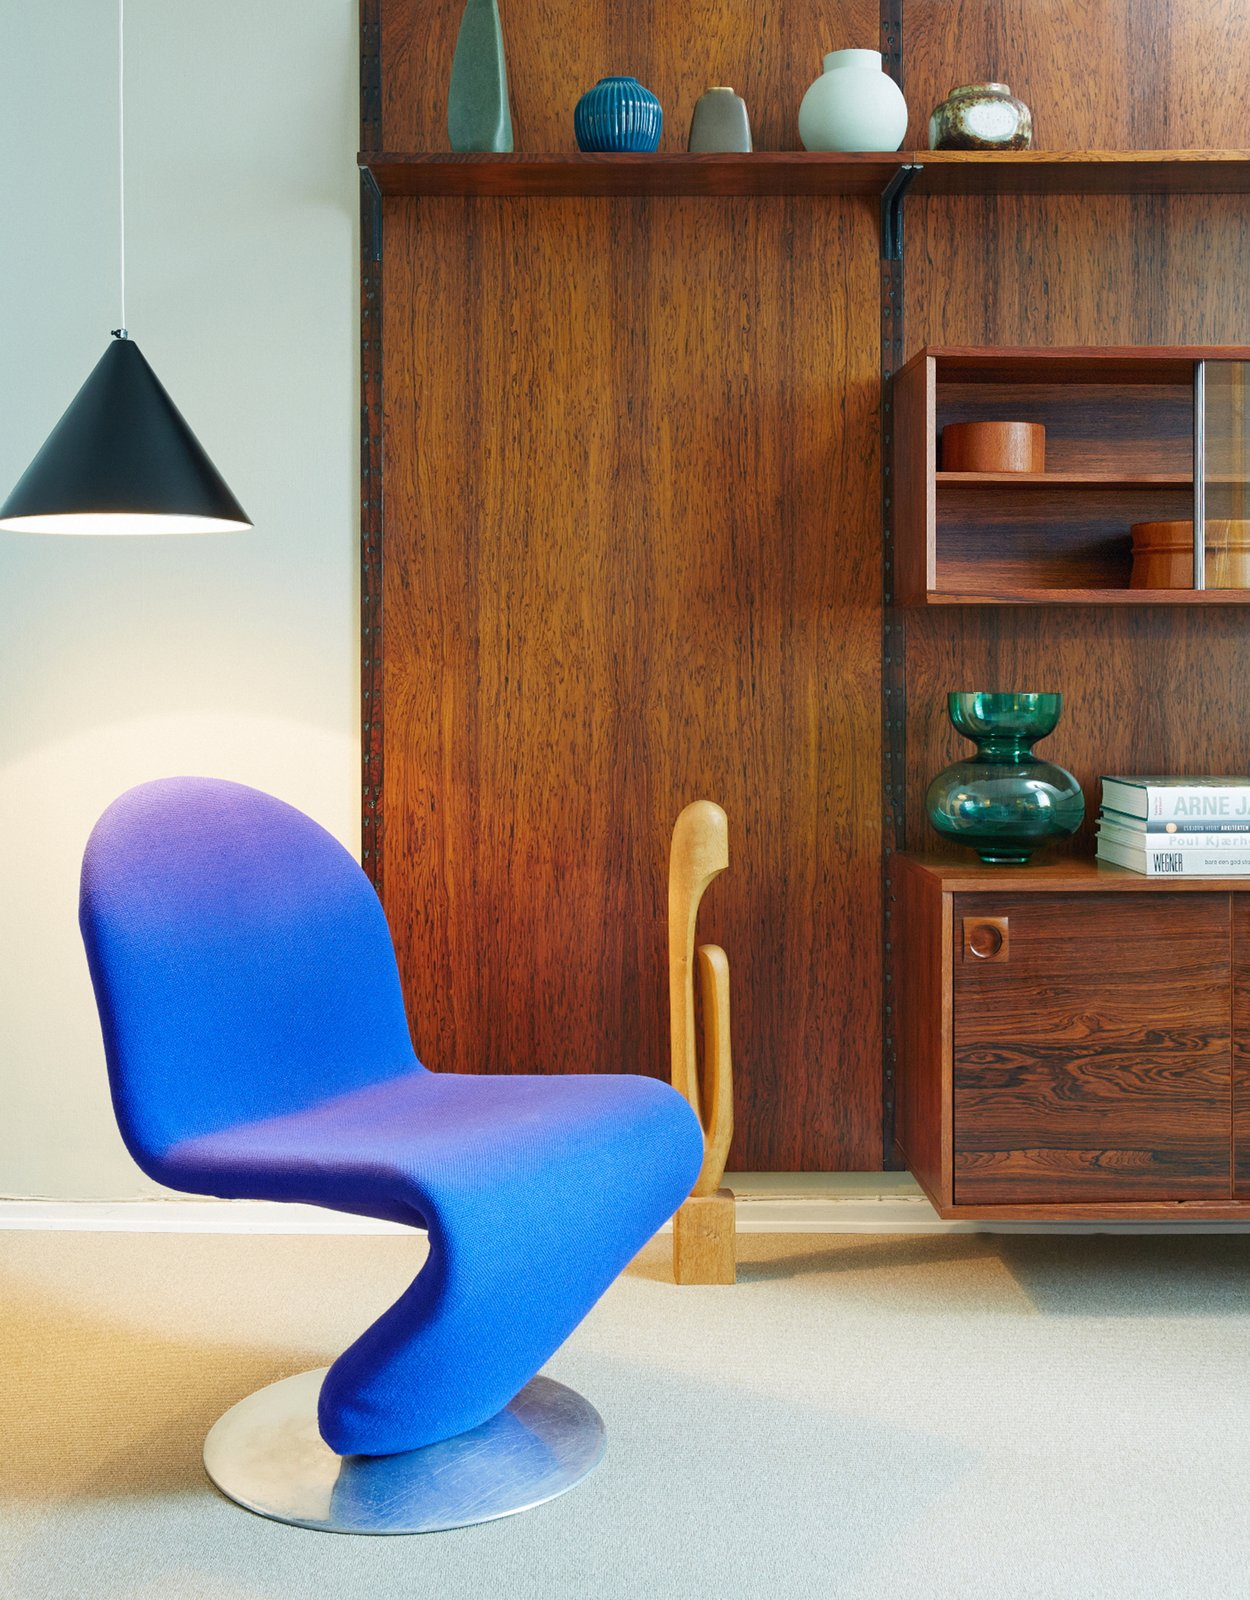 Living Room, Pendant Lighting, Chair, and Media Cabinet Collector's Suite  Photo 9 of 9 in Get Your Fix of Midcentury Scandinavian Design at This Copenhagen Hotel